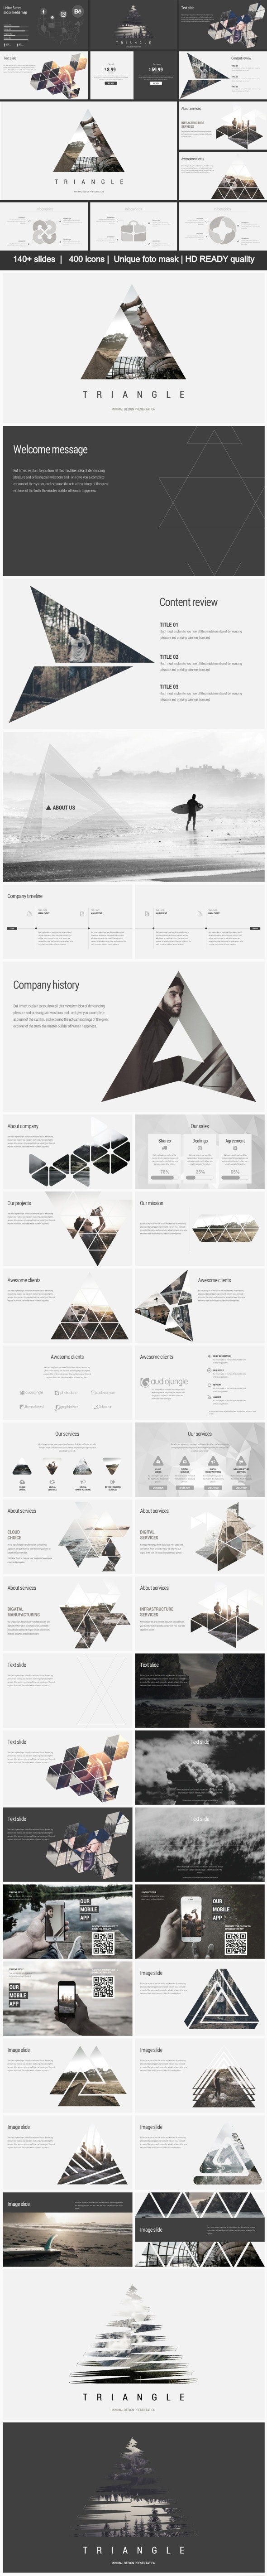 Business Minimal - Business PowerPoint Templates